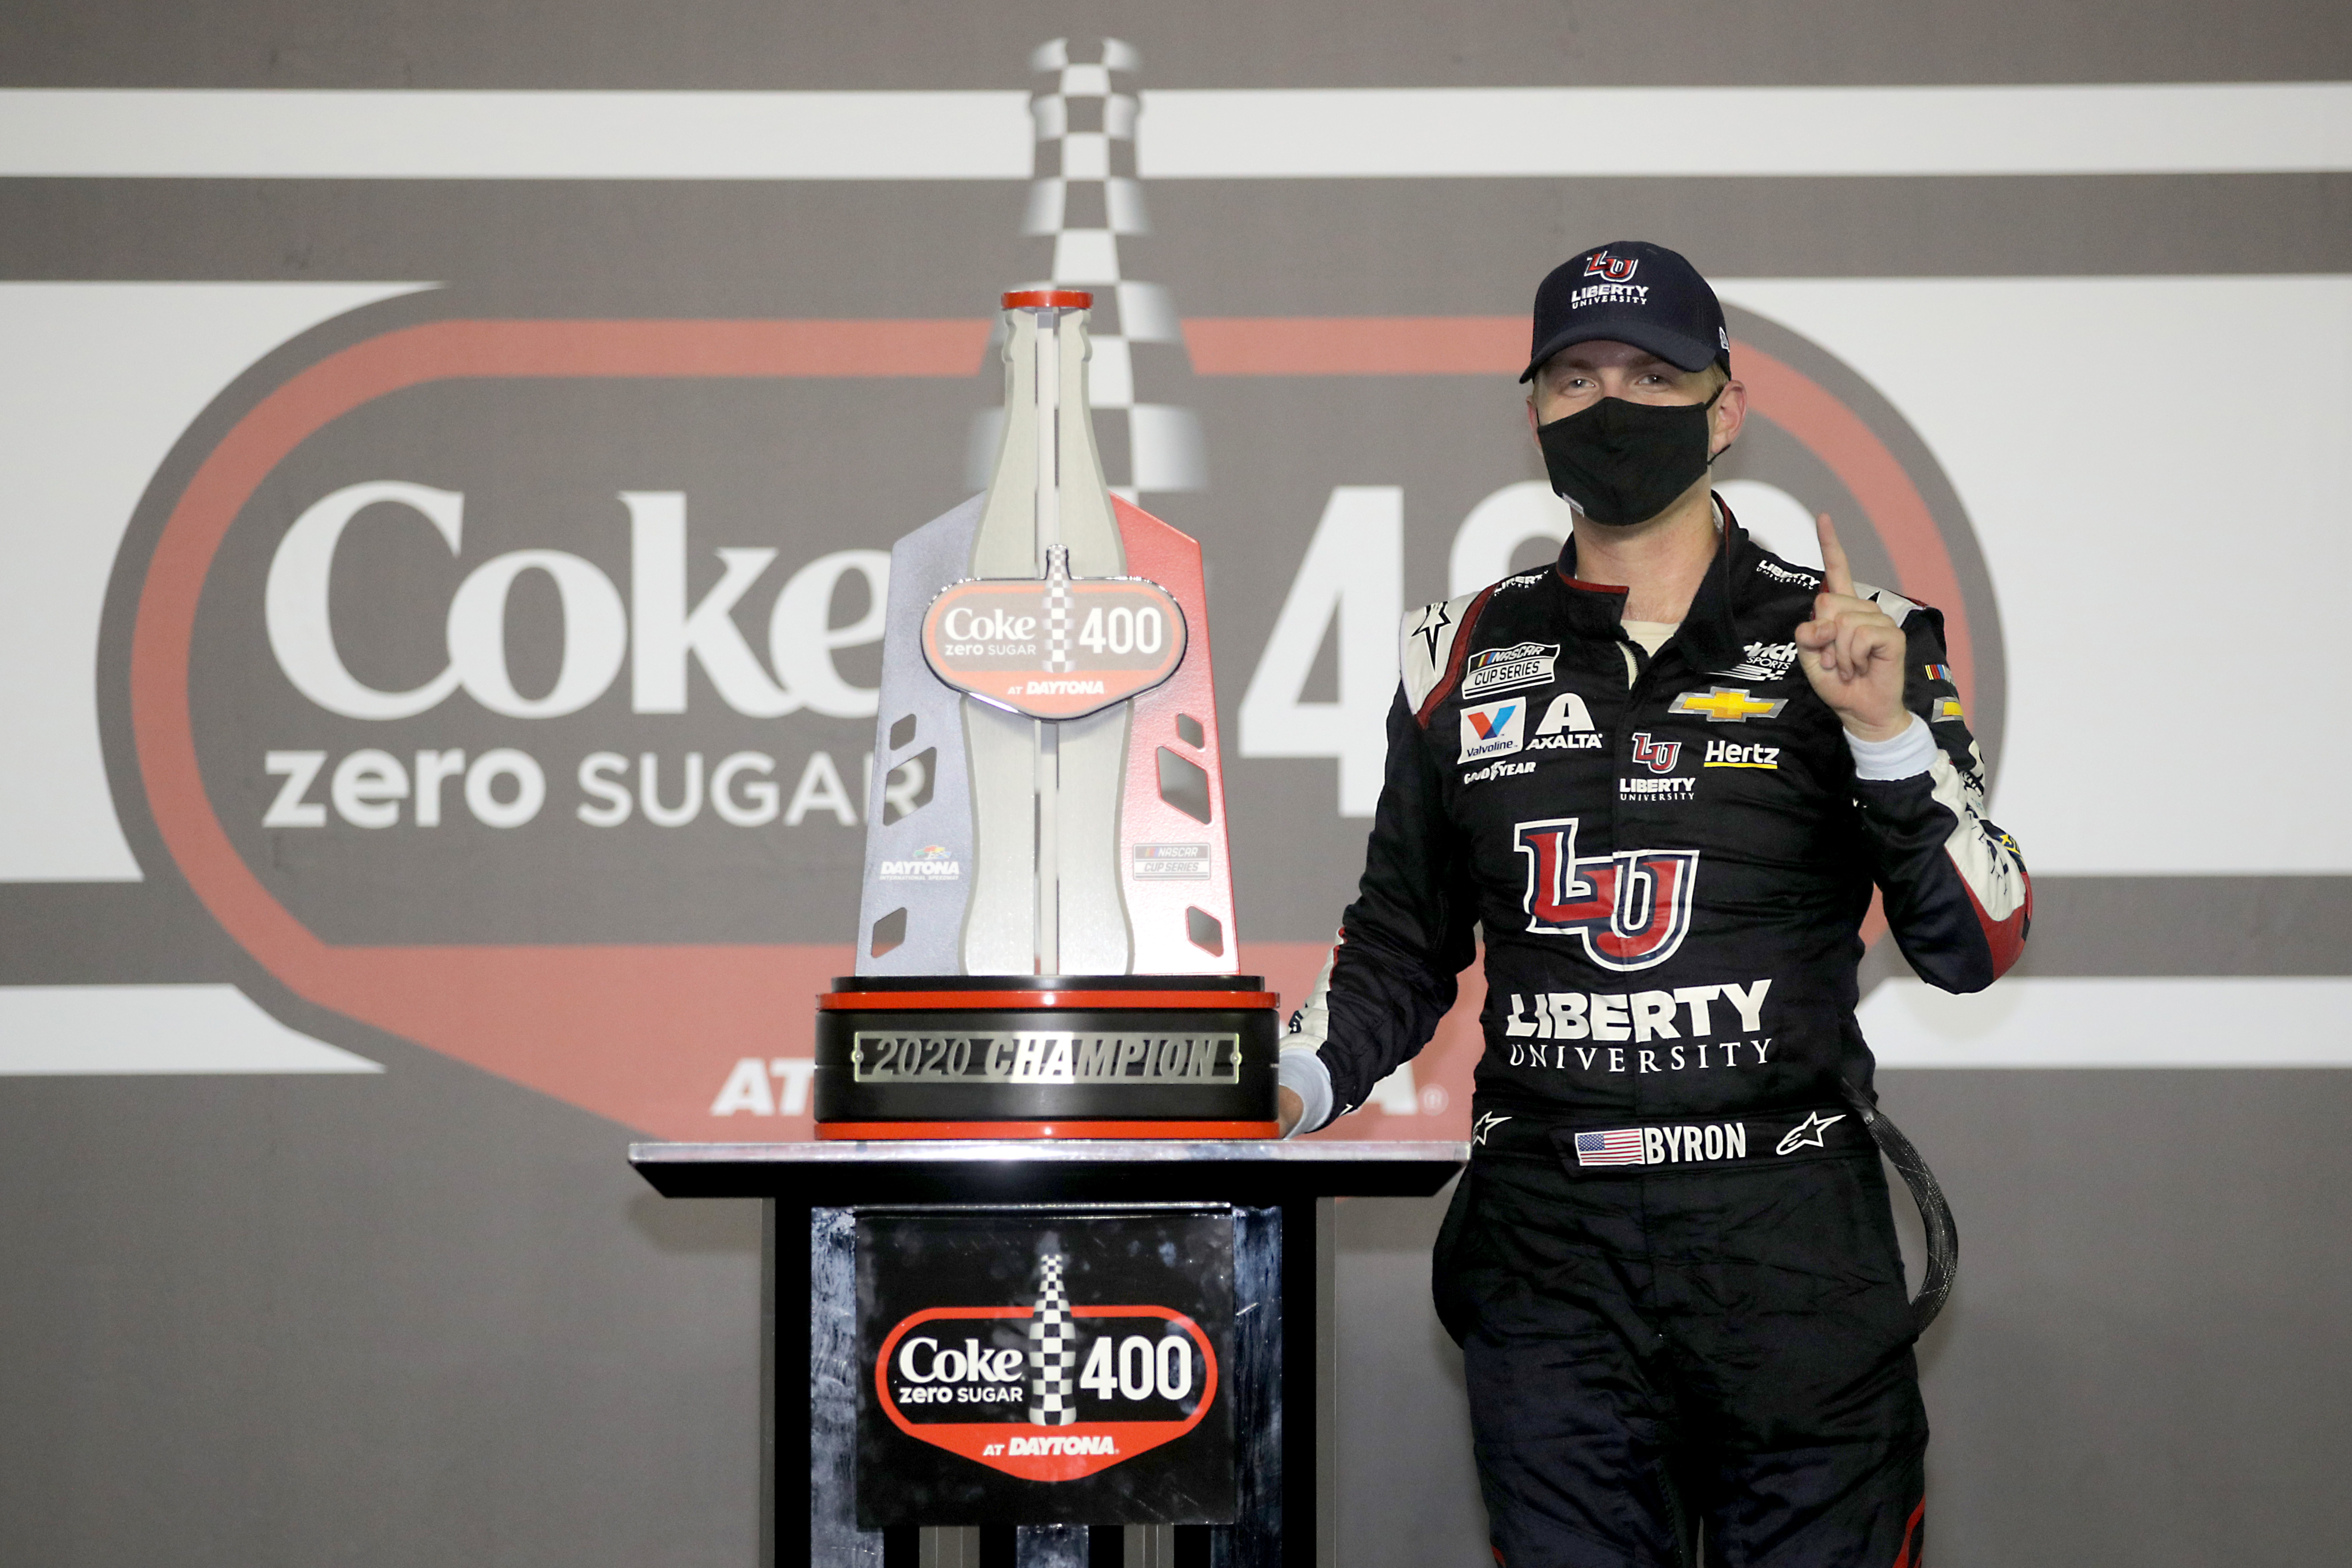 Liberty University Chevrolet driver William Byron celebrates in Victory Lane after winning the NASCAR Cup Series Coke Zero Sugar 400